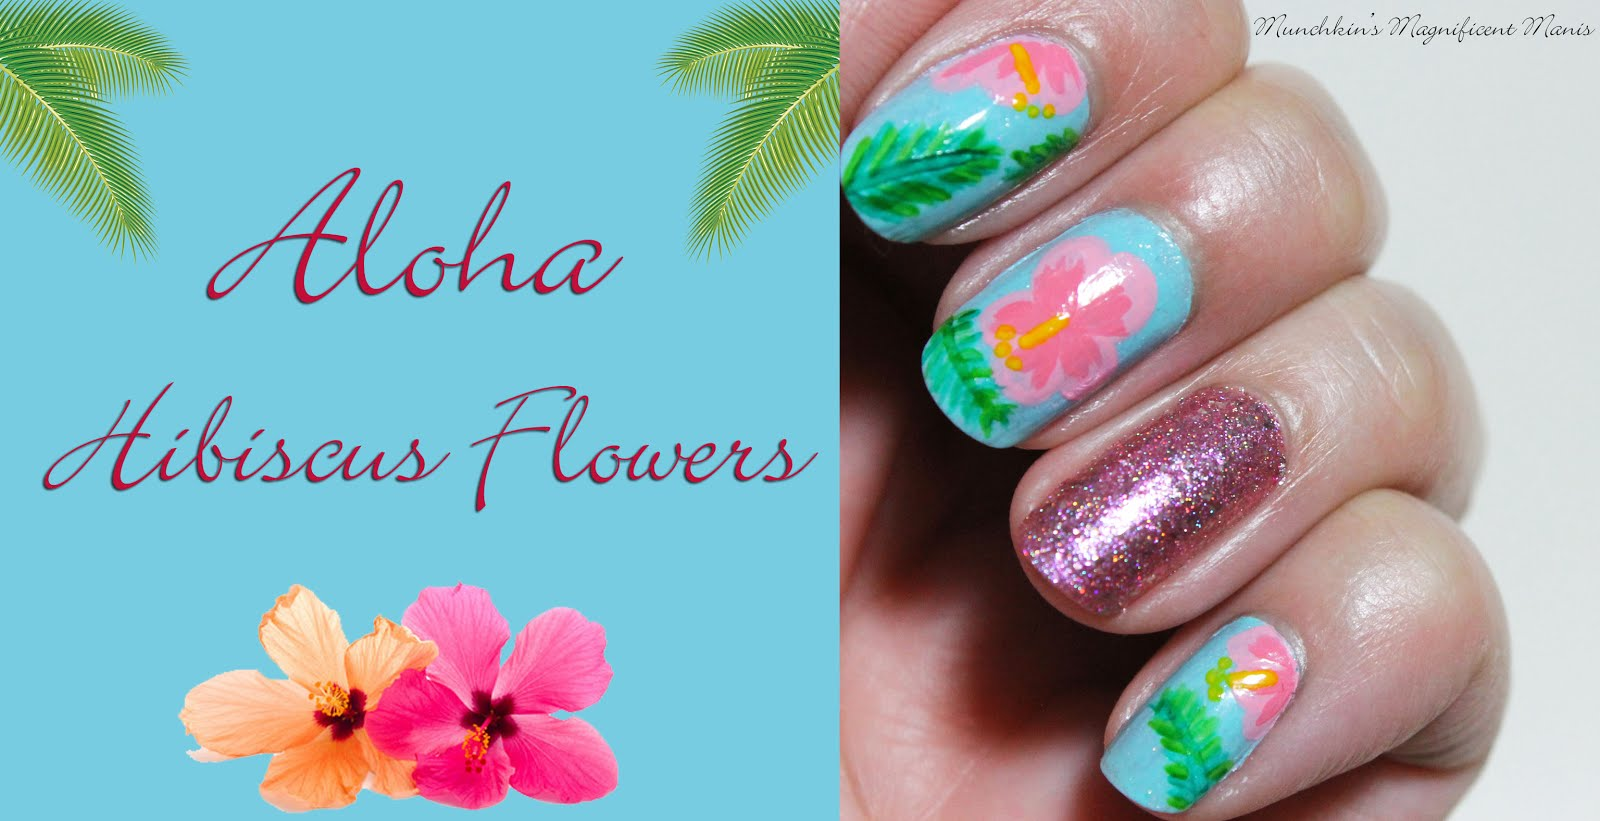 Munchkins Magnificent Manis Aloha Flowers Hibiscus Flower Nail Design